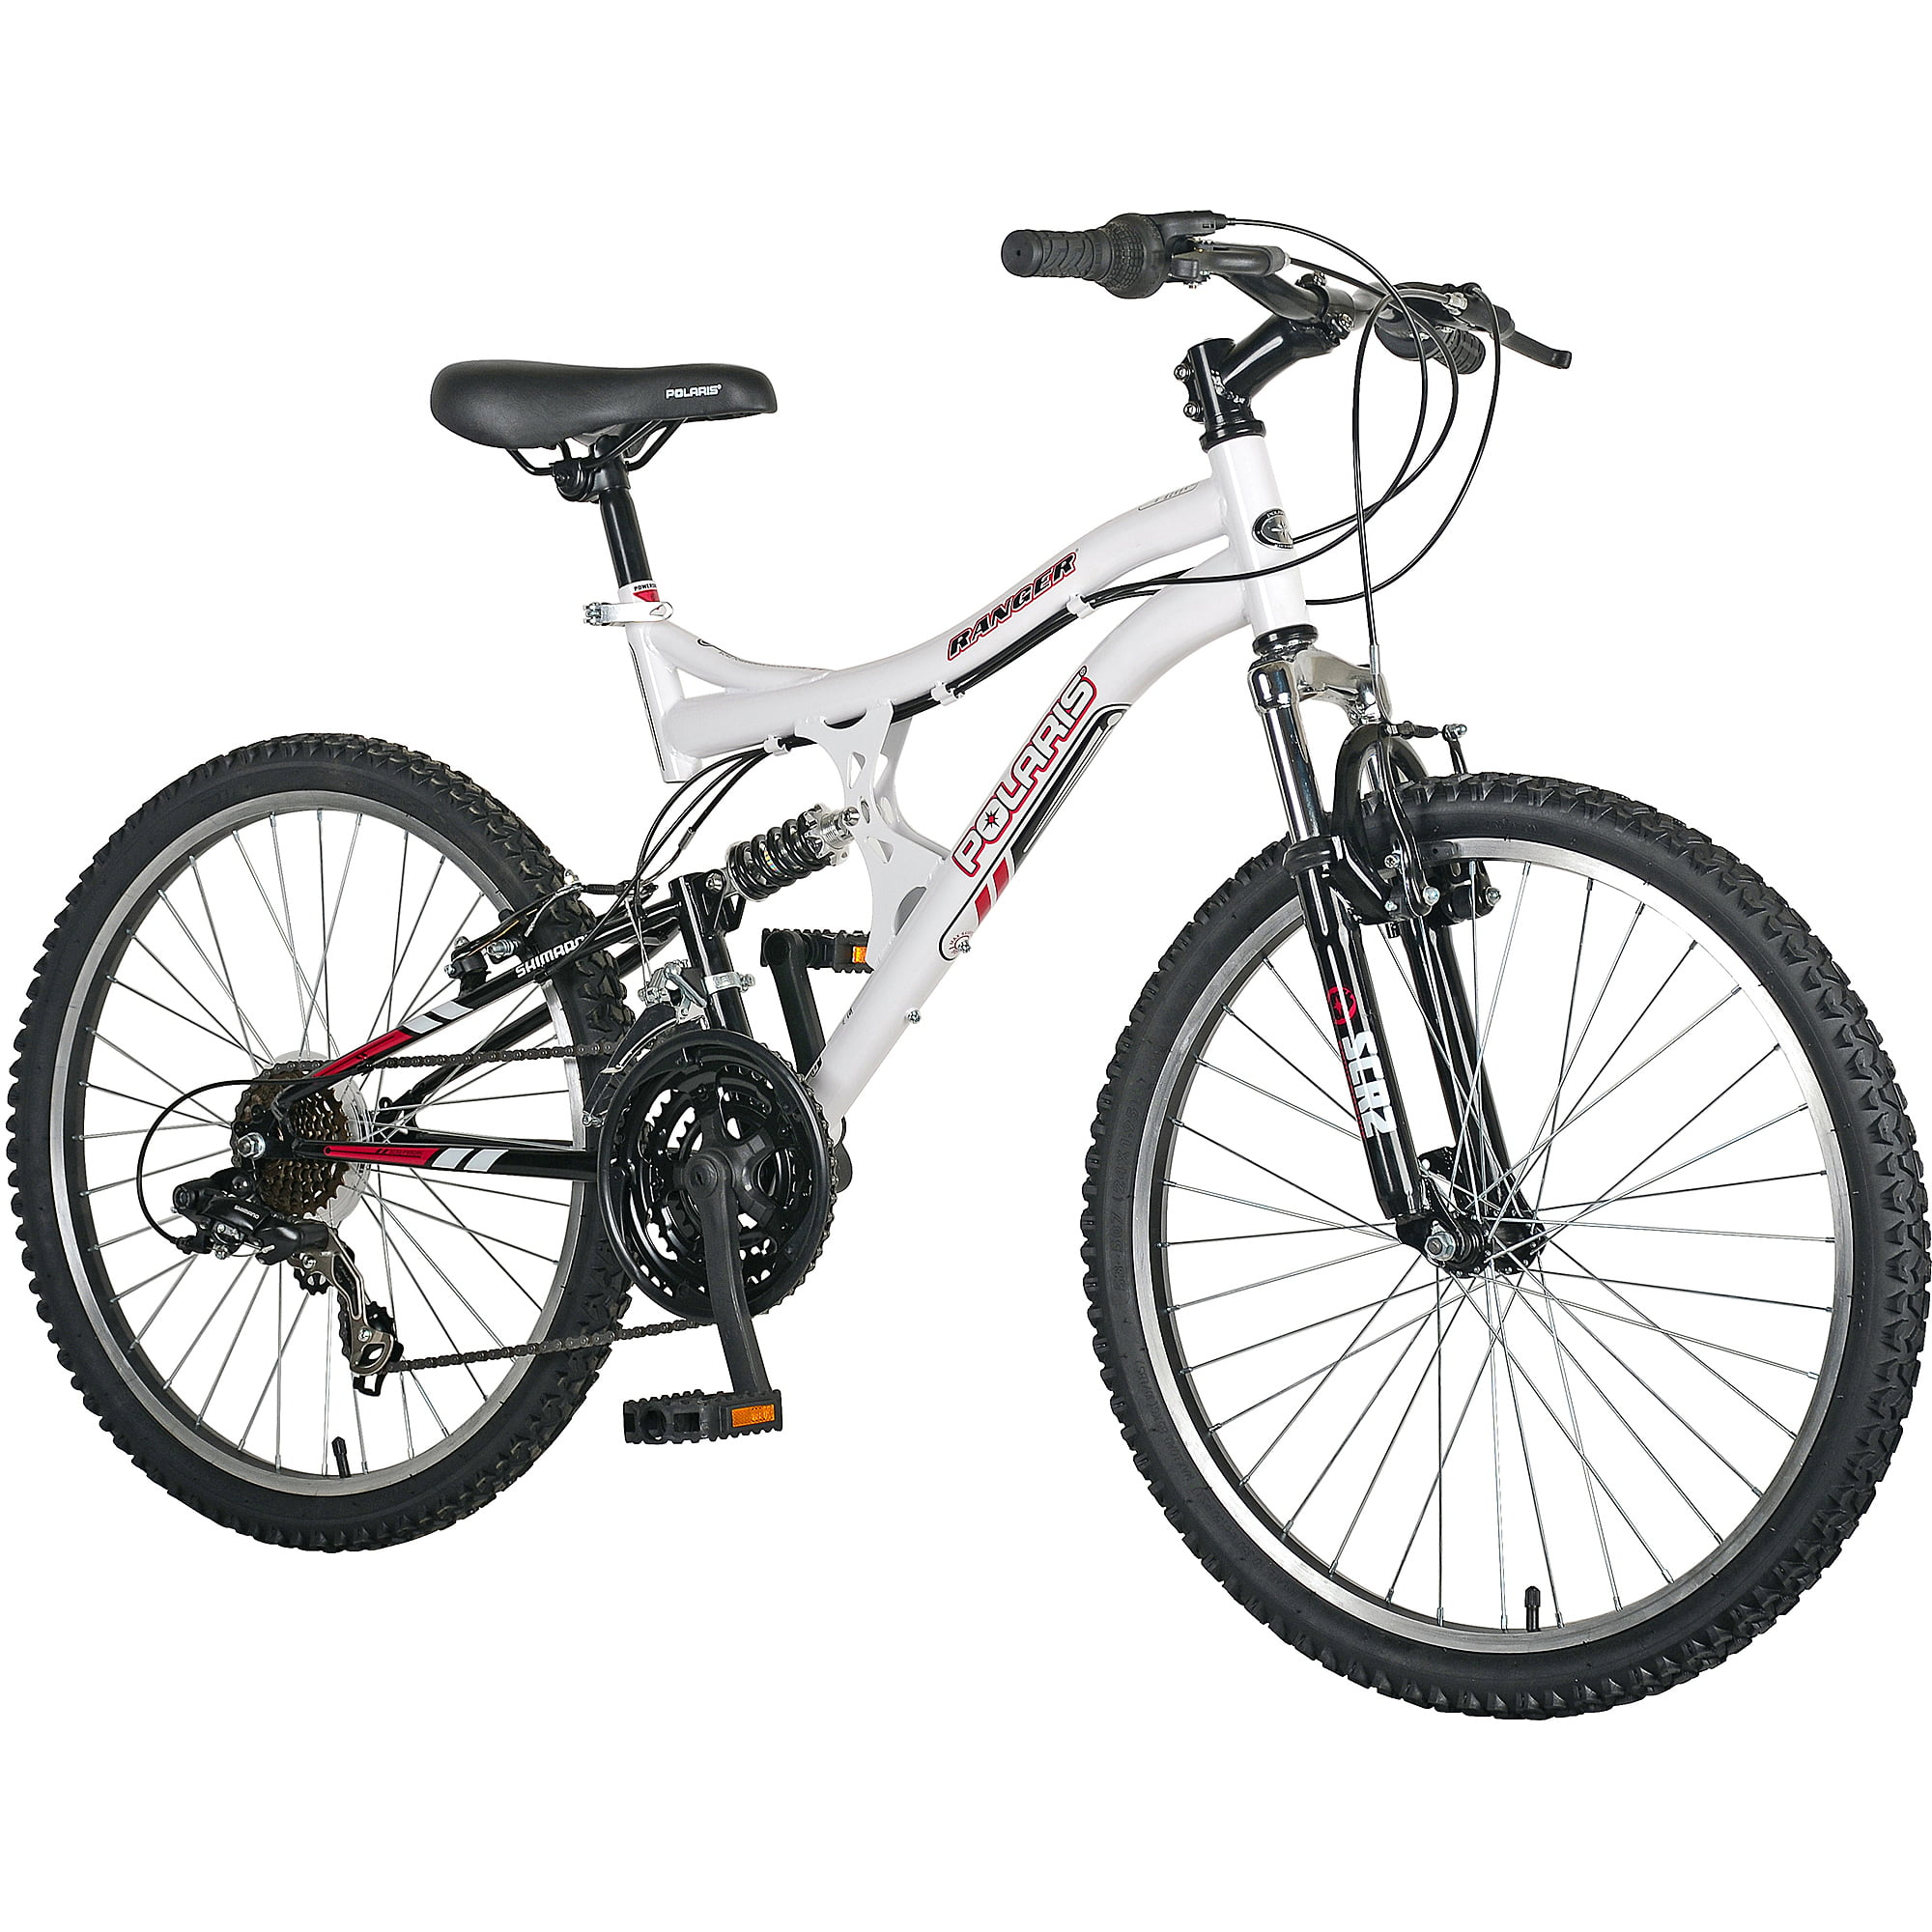 Polaris Ranger G.0 Mountain Bike by Cycle Force Group